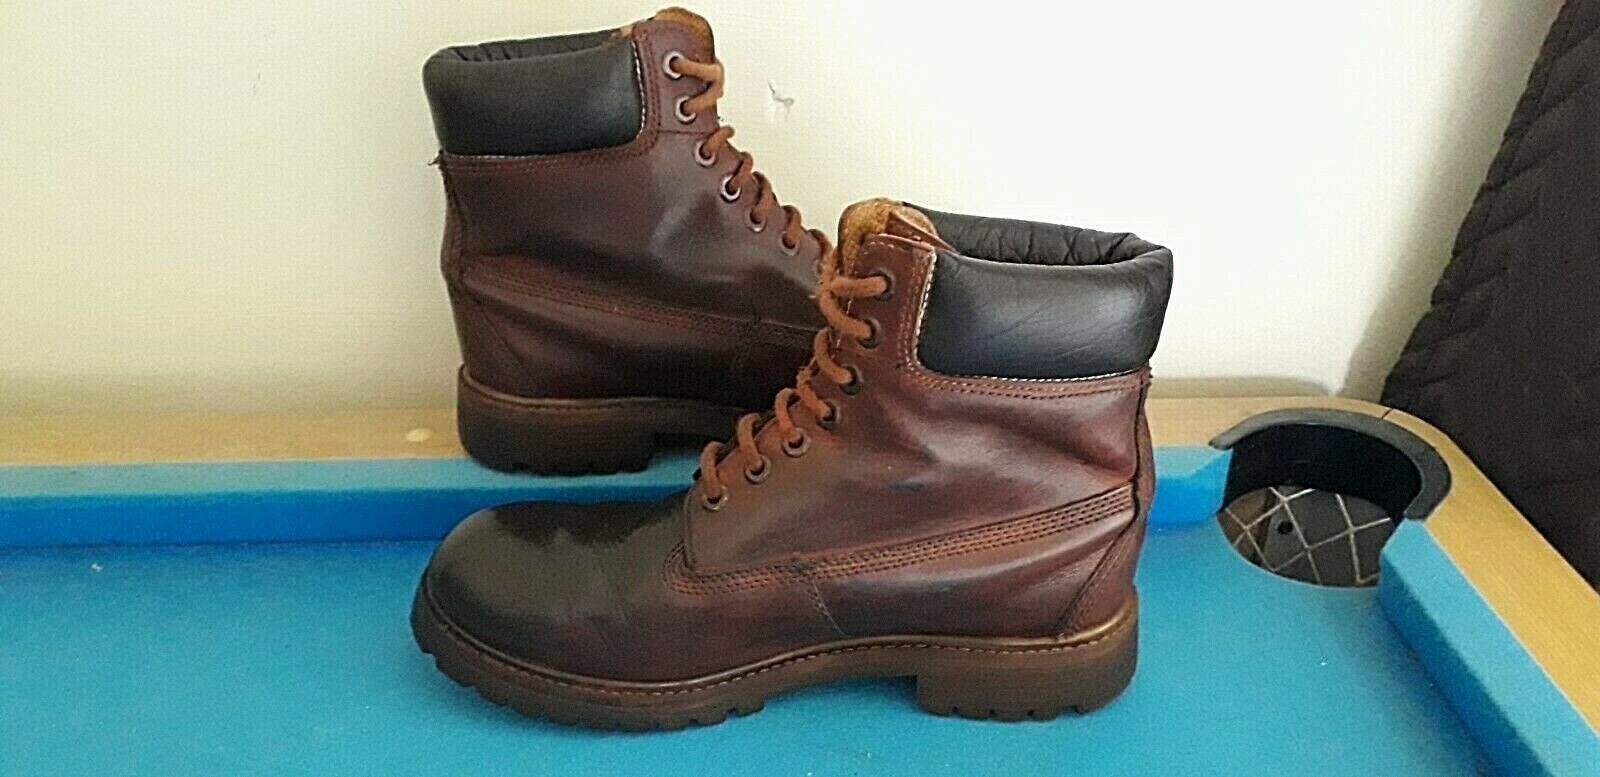 Men's Brown Leather Lace Up Ankle Boots Size UK 7 - GREAT CONDITION